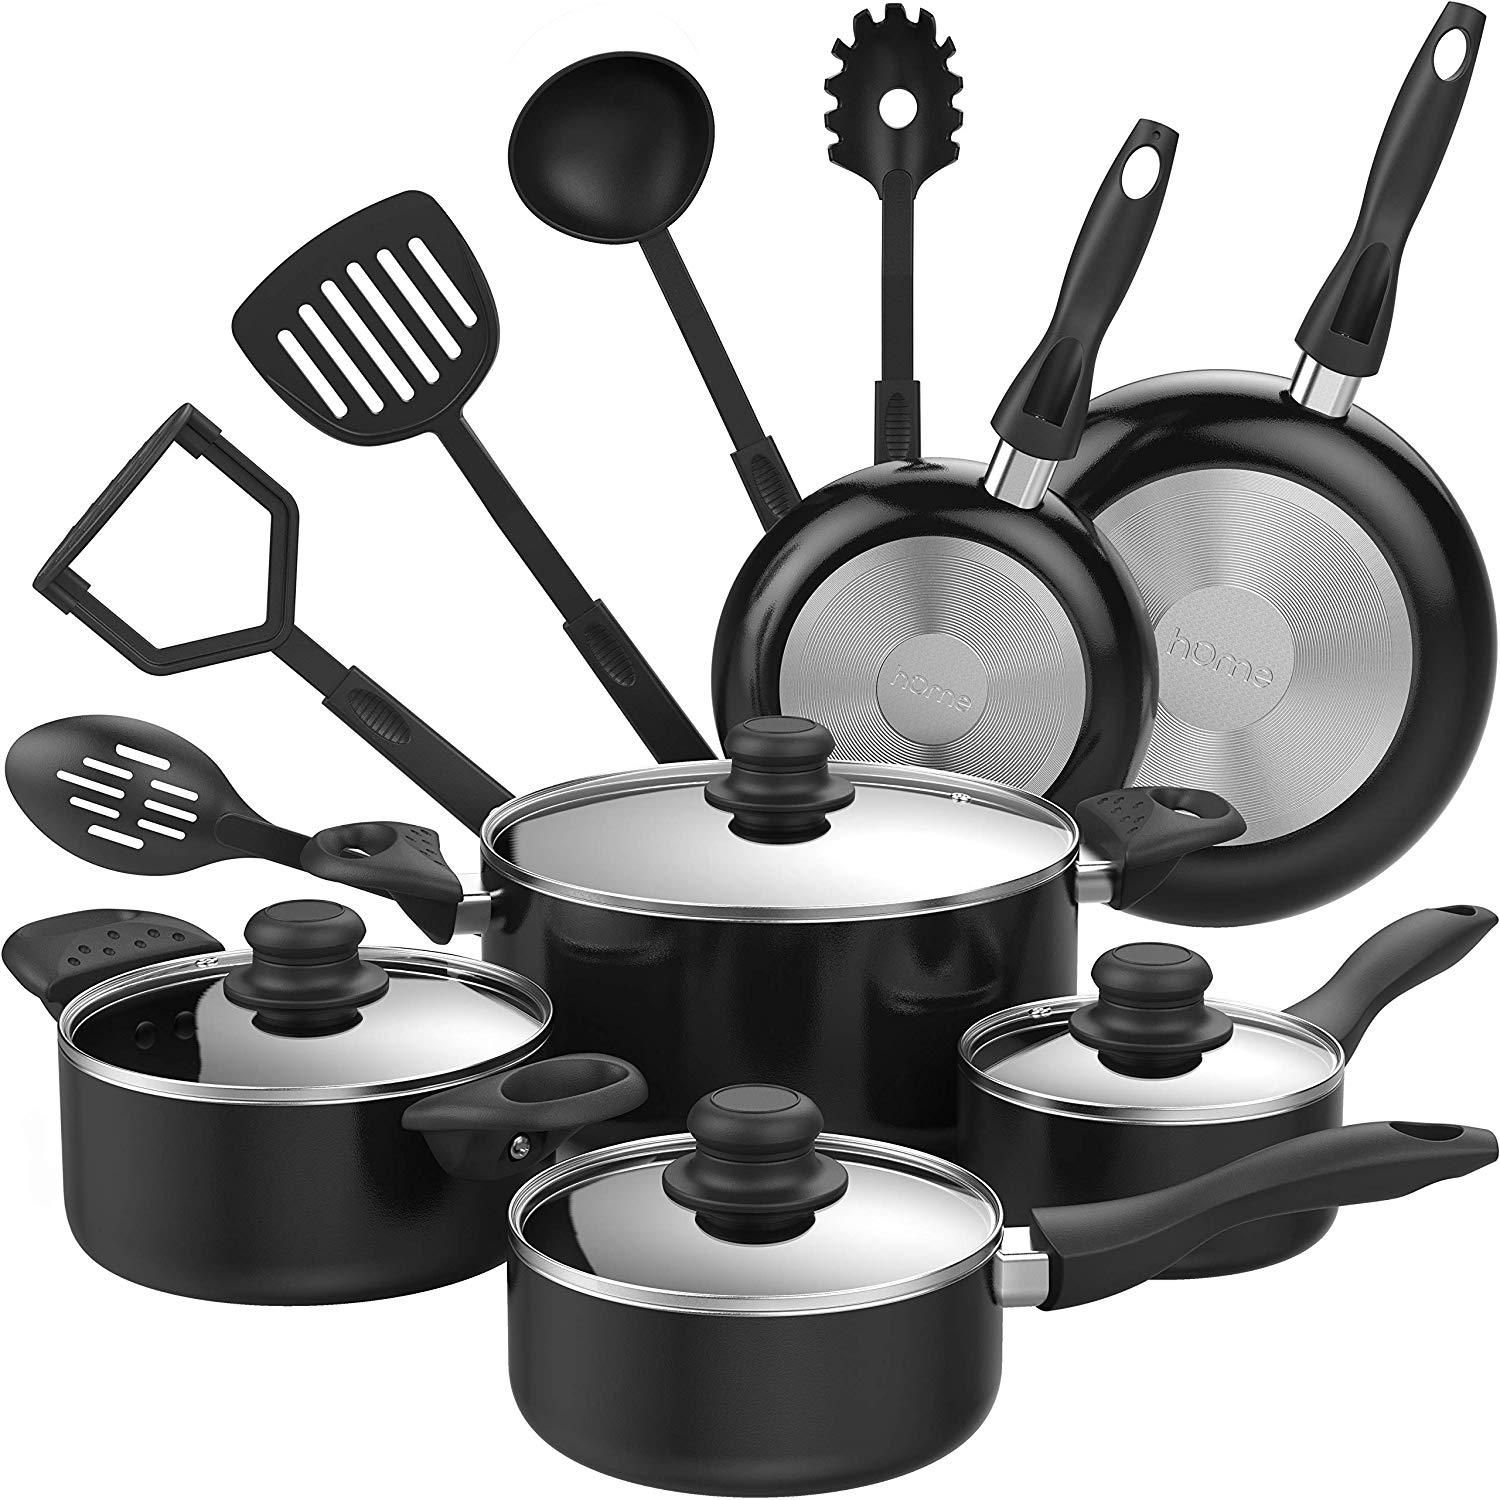 Pin On Ultimate Cookware Sets